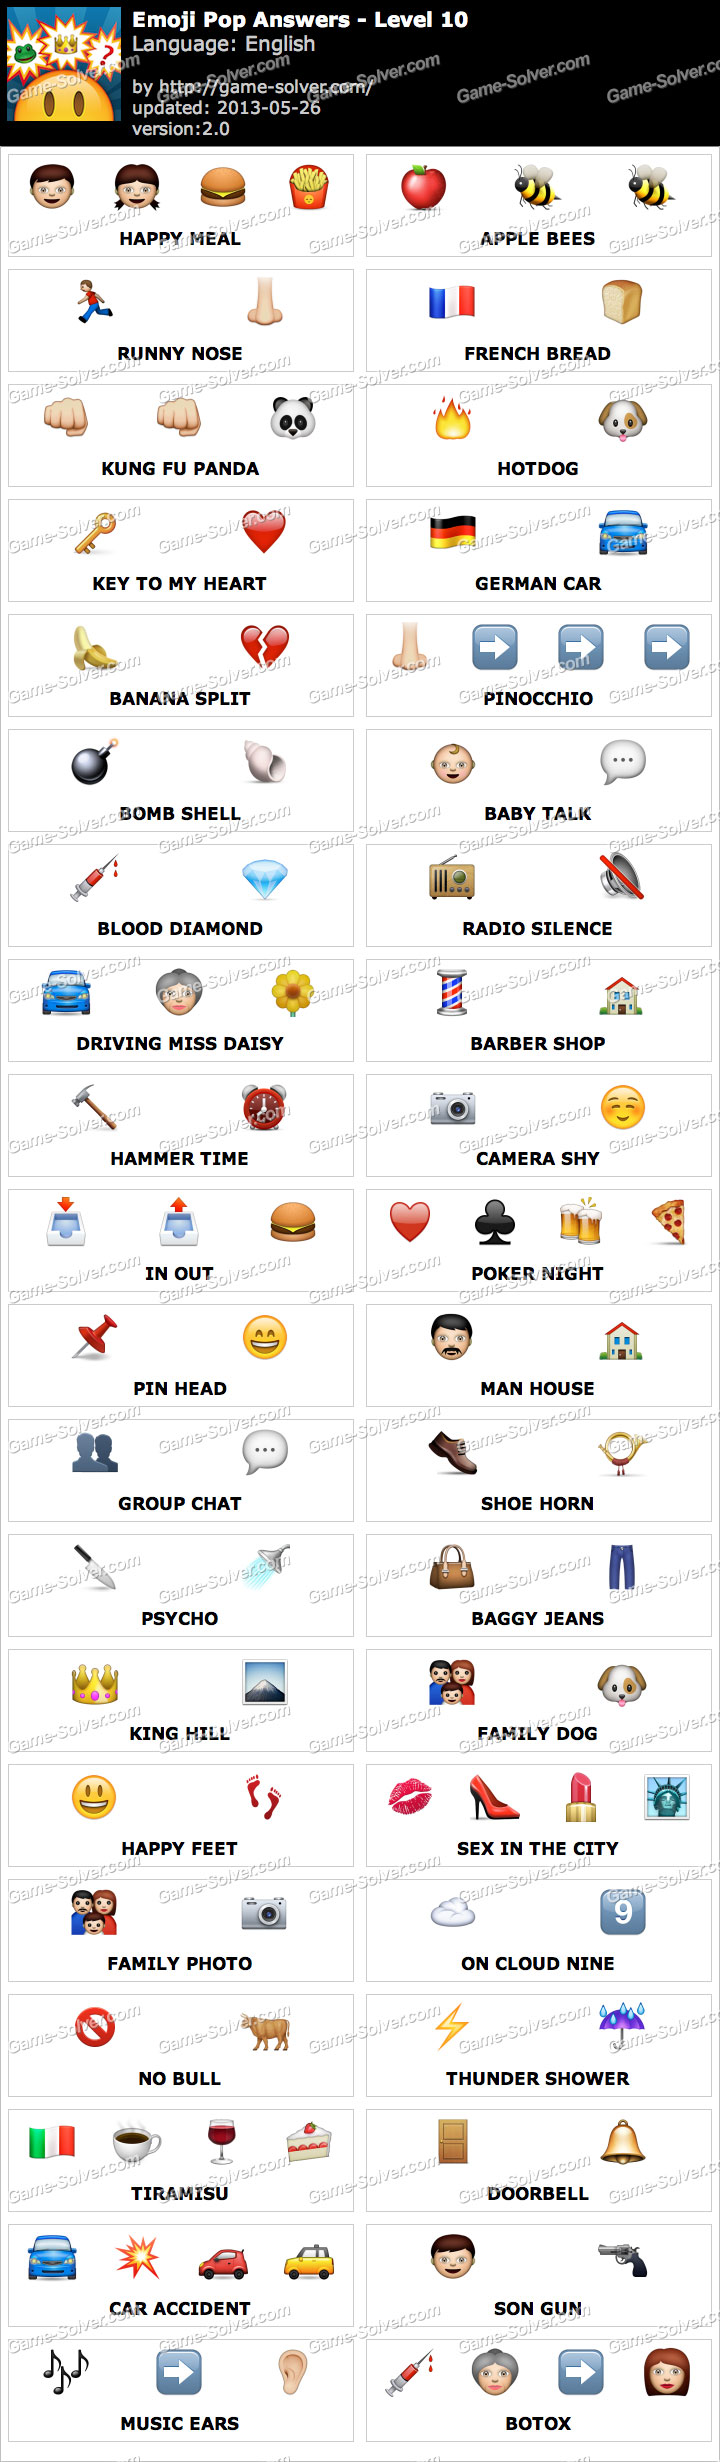 Emoji Pop Level 6 Answers